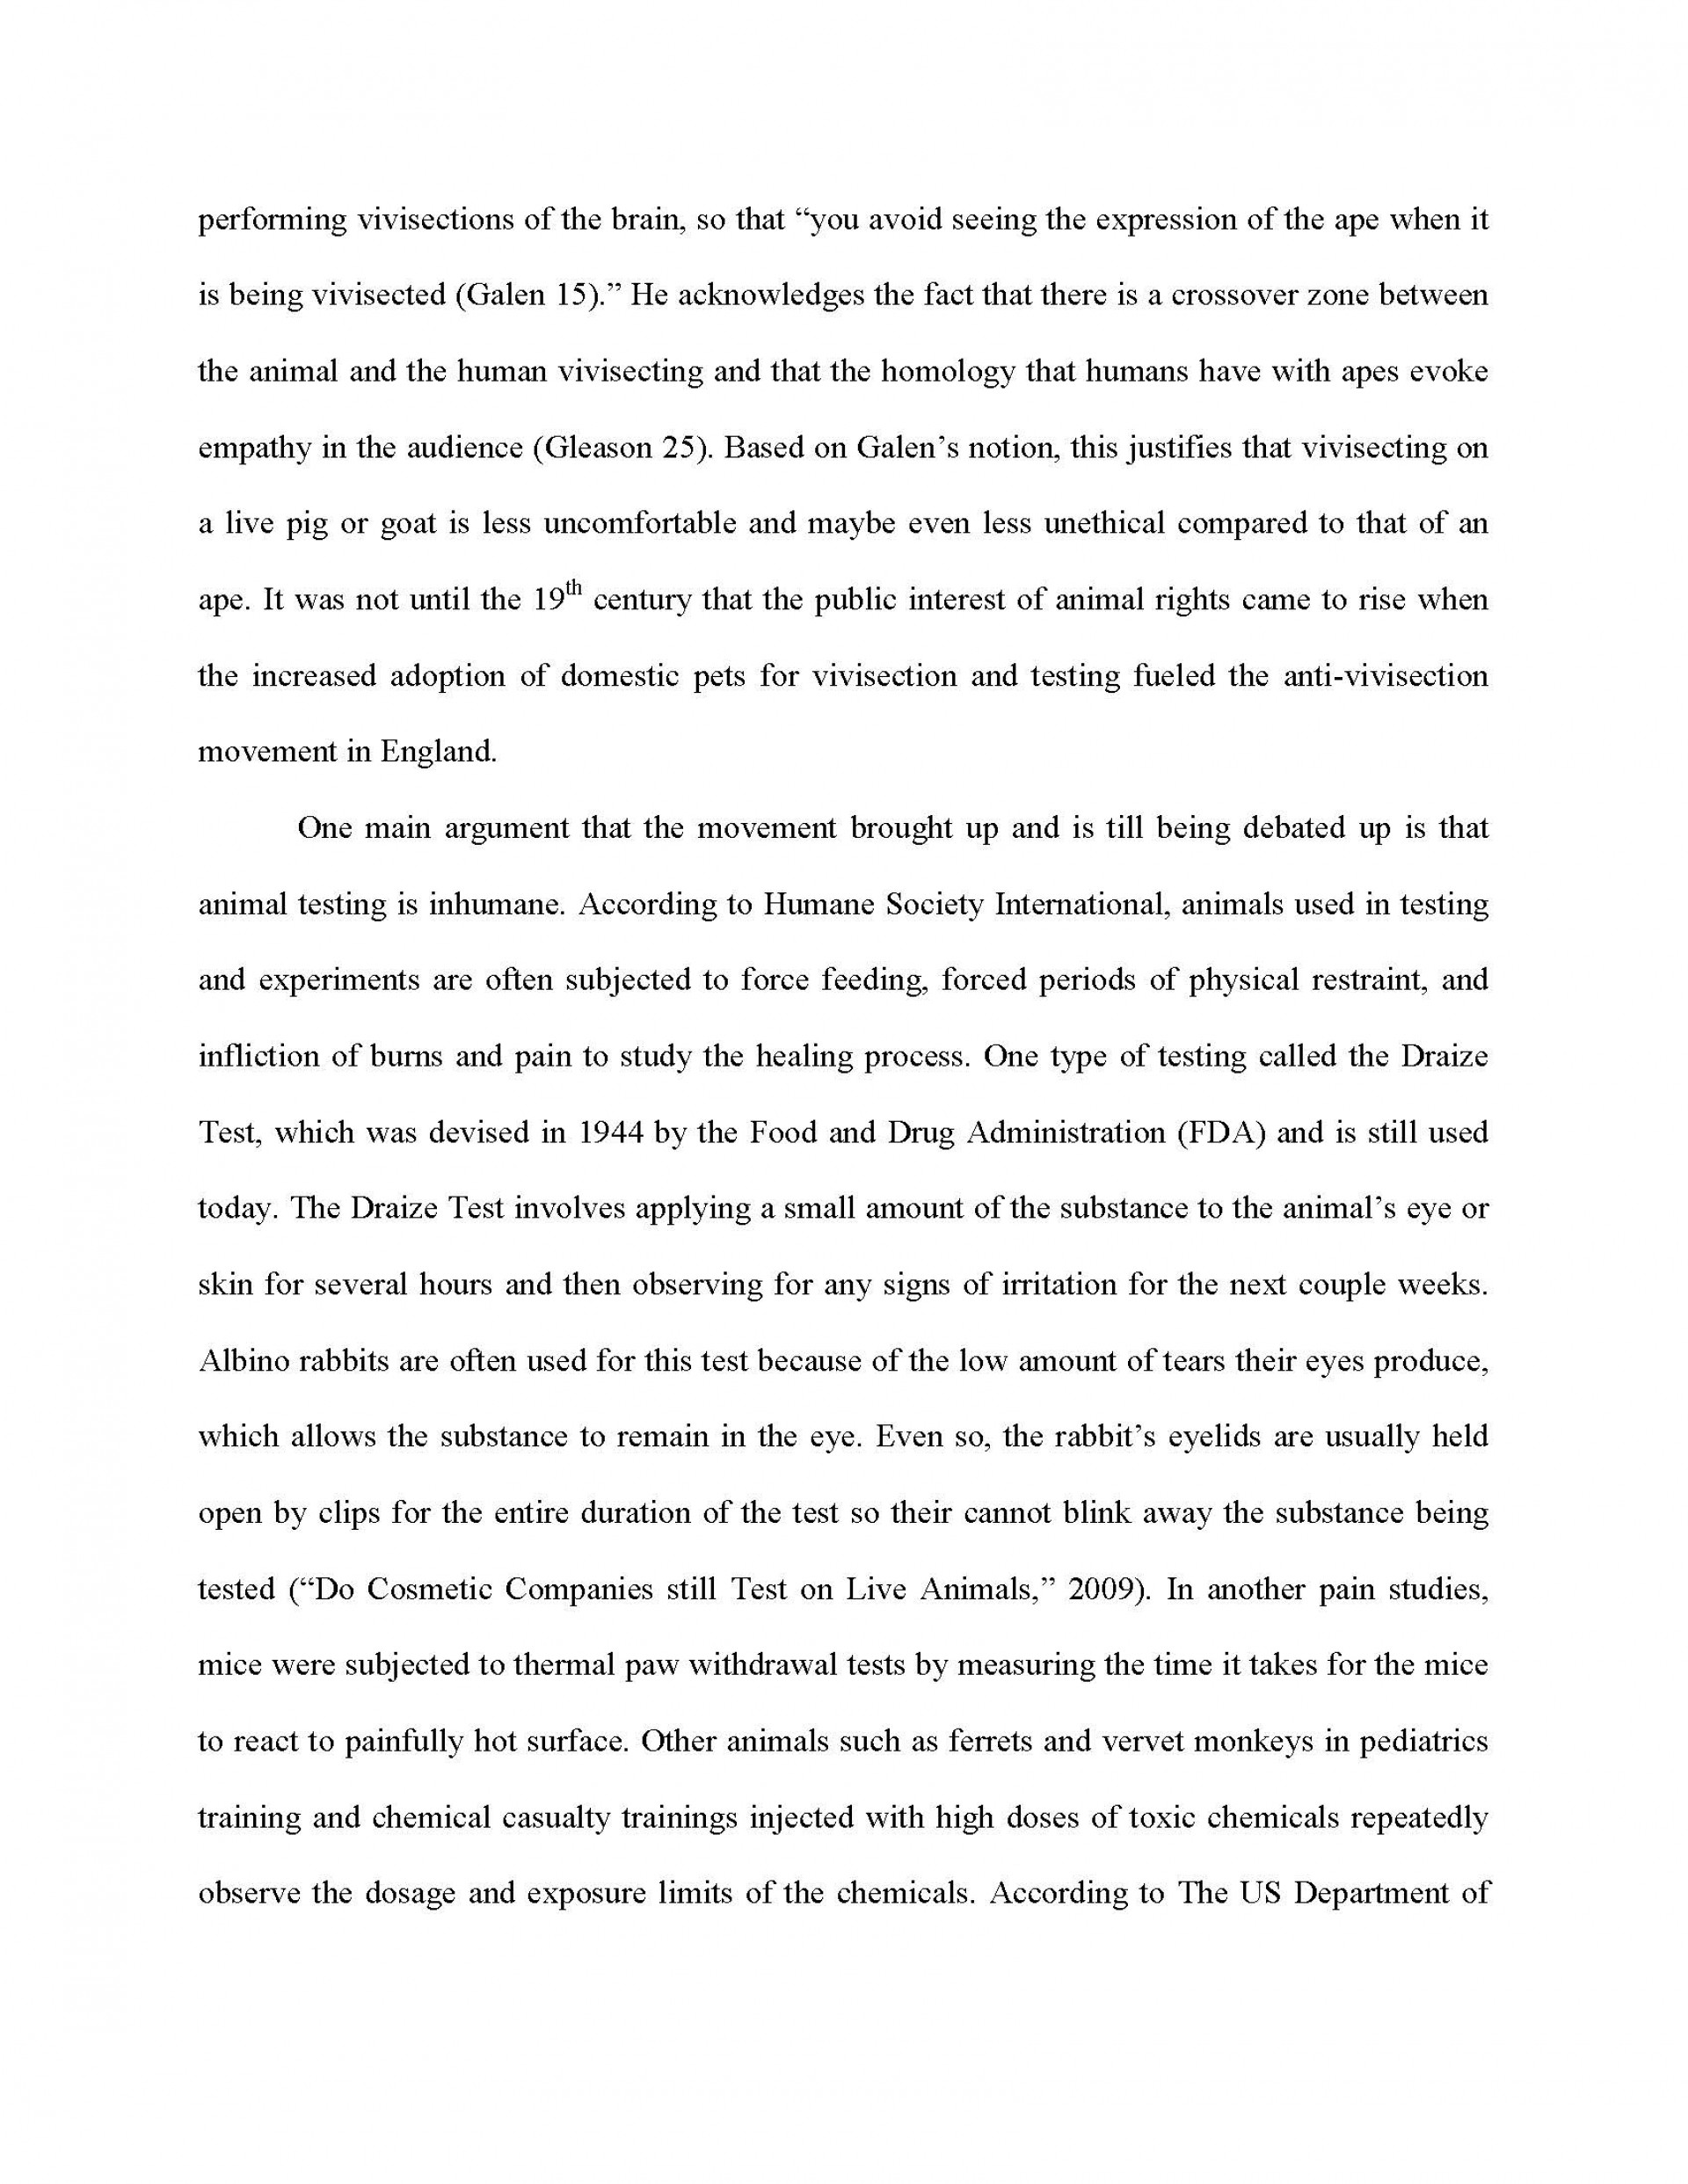 008 Cruelty To Animals Essay Example Animal Testing Final Page 2 Wondrous In 100 Words Persuasive Towards Wikipedia 1920